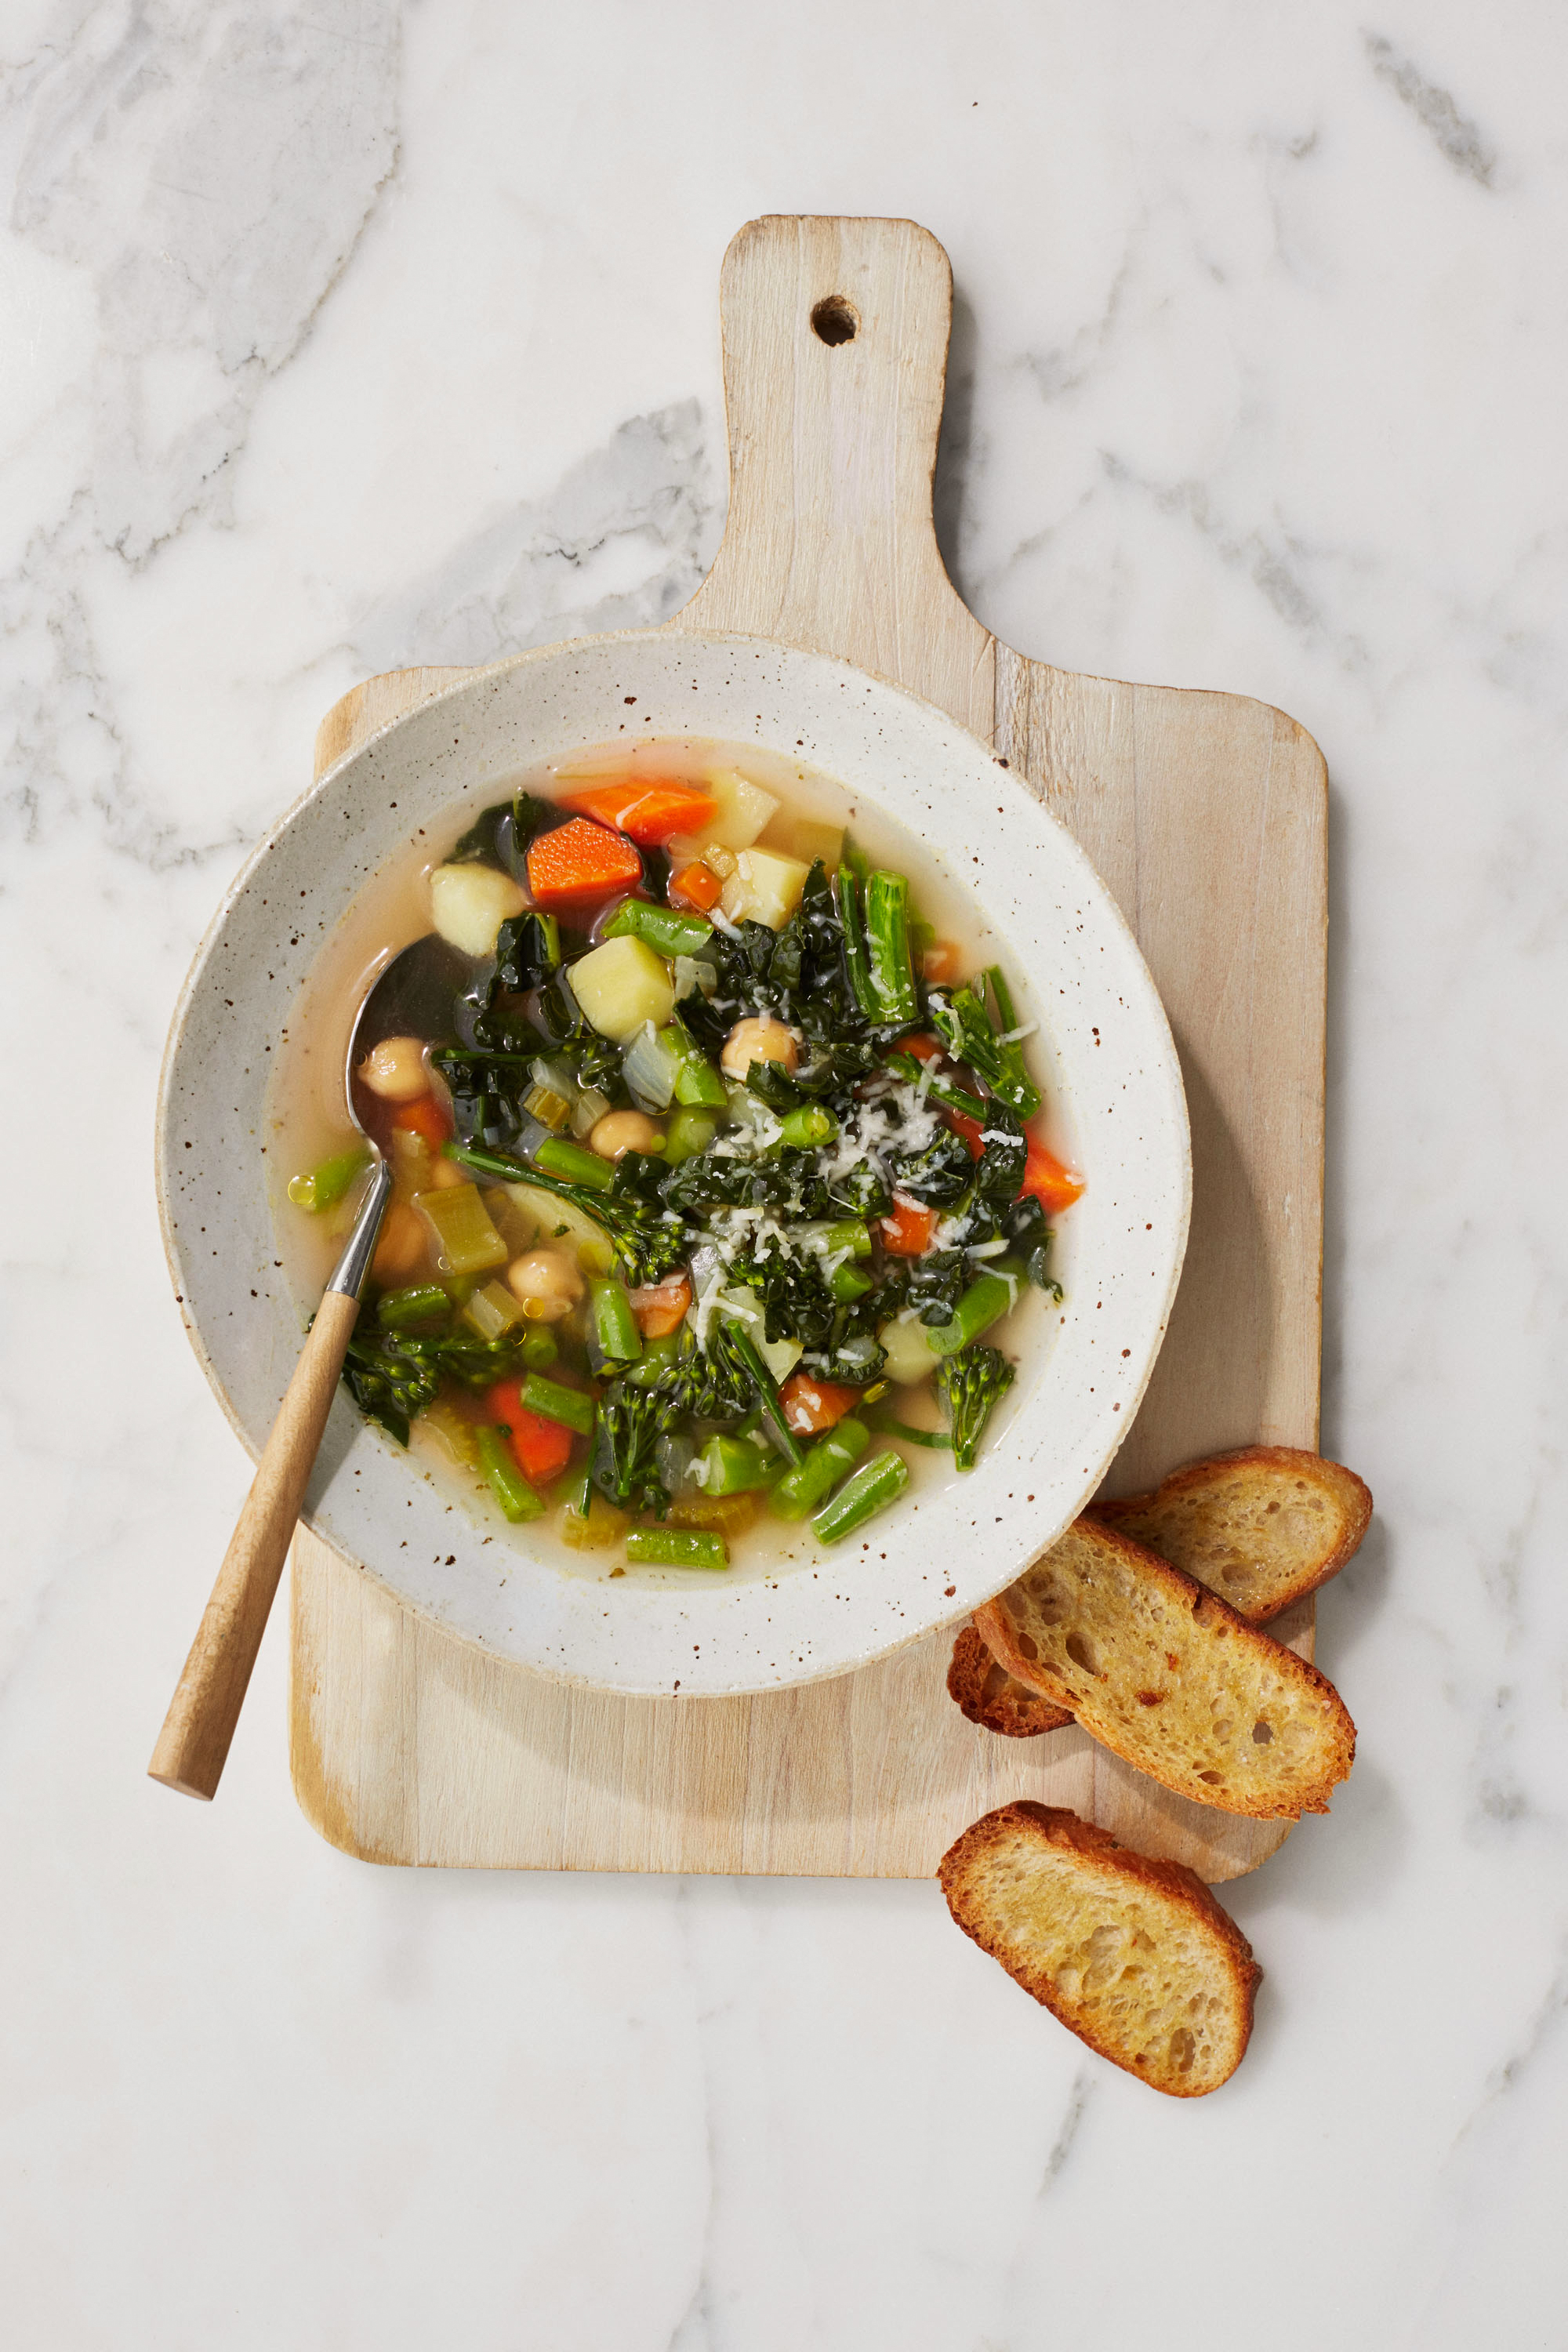 homemade vegetable soup with toasted bread on cutting board